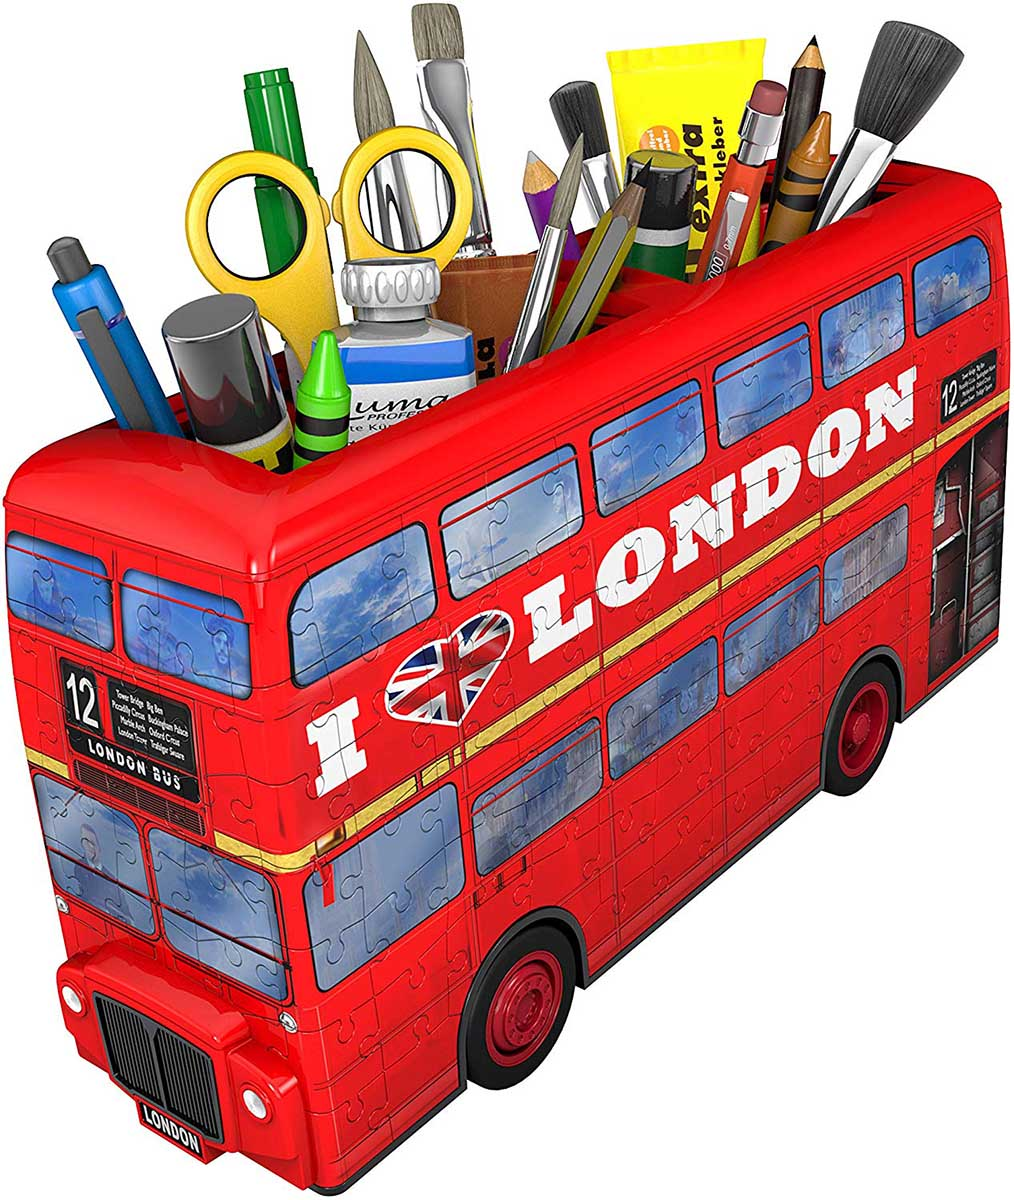 London Bus Vehicles 3D Puzzle